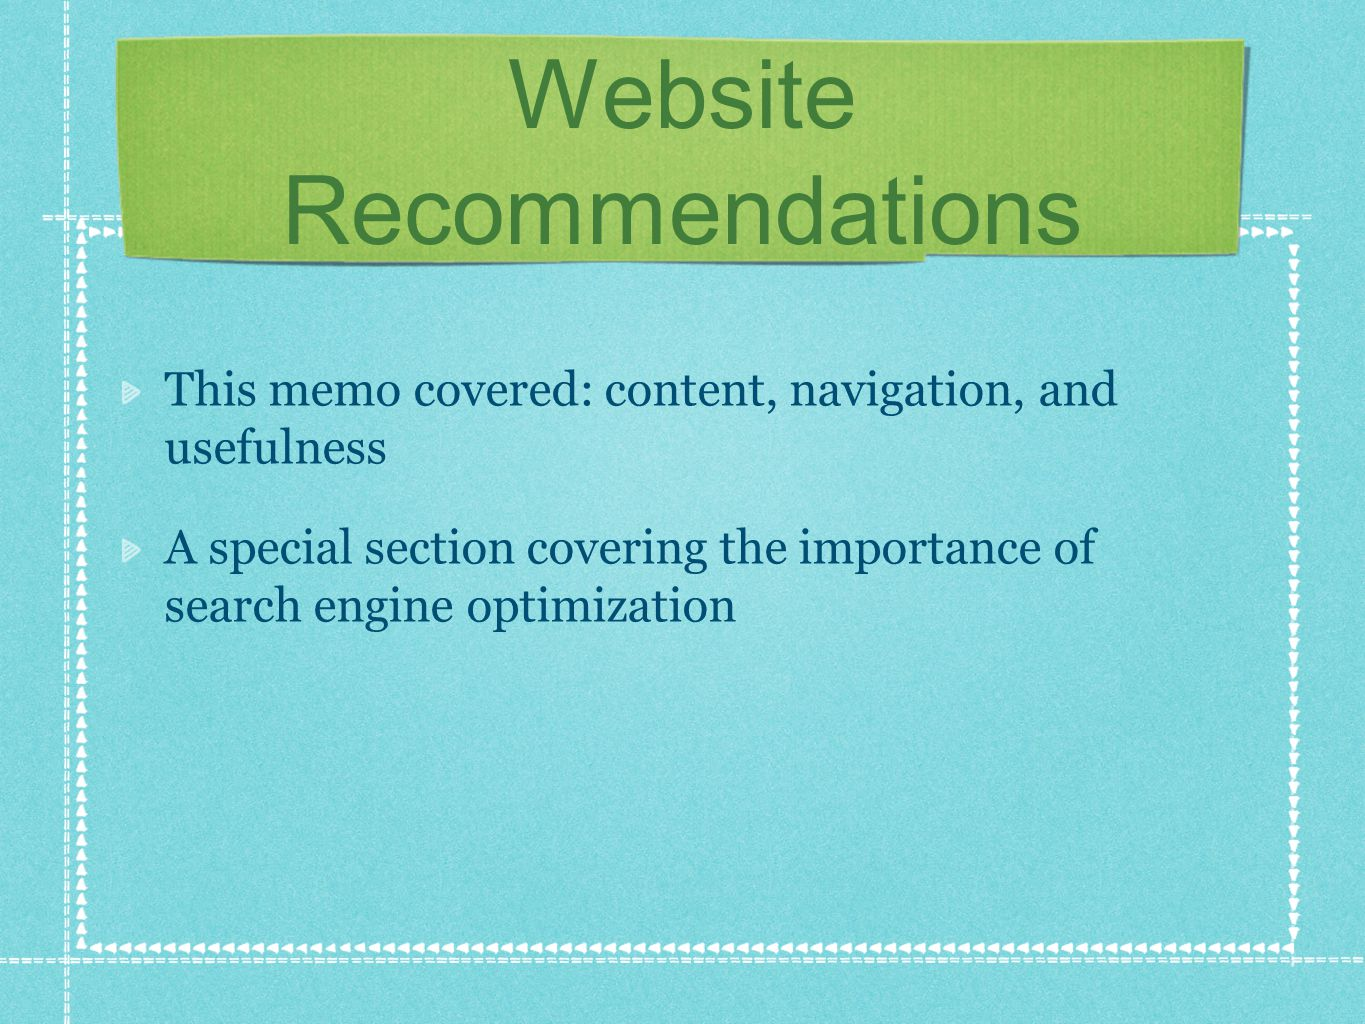 Website Recommendations This memo covered: content, navigation, and usefulness A special section covering the importance of search engine optimization